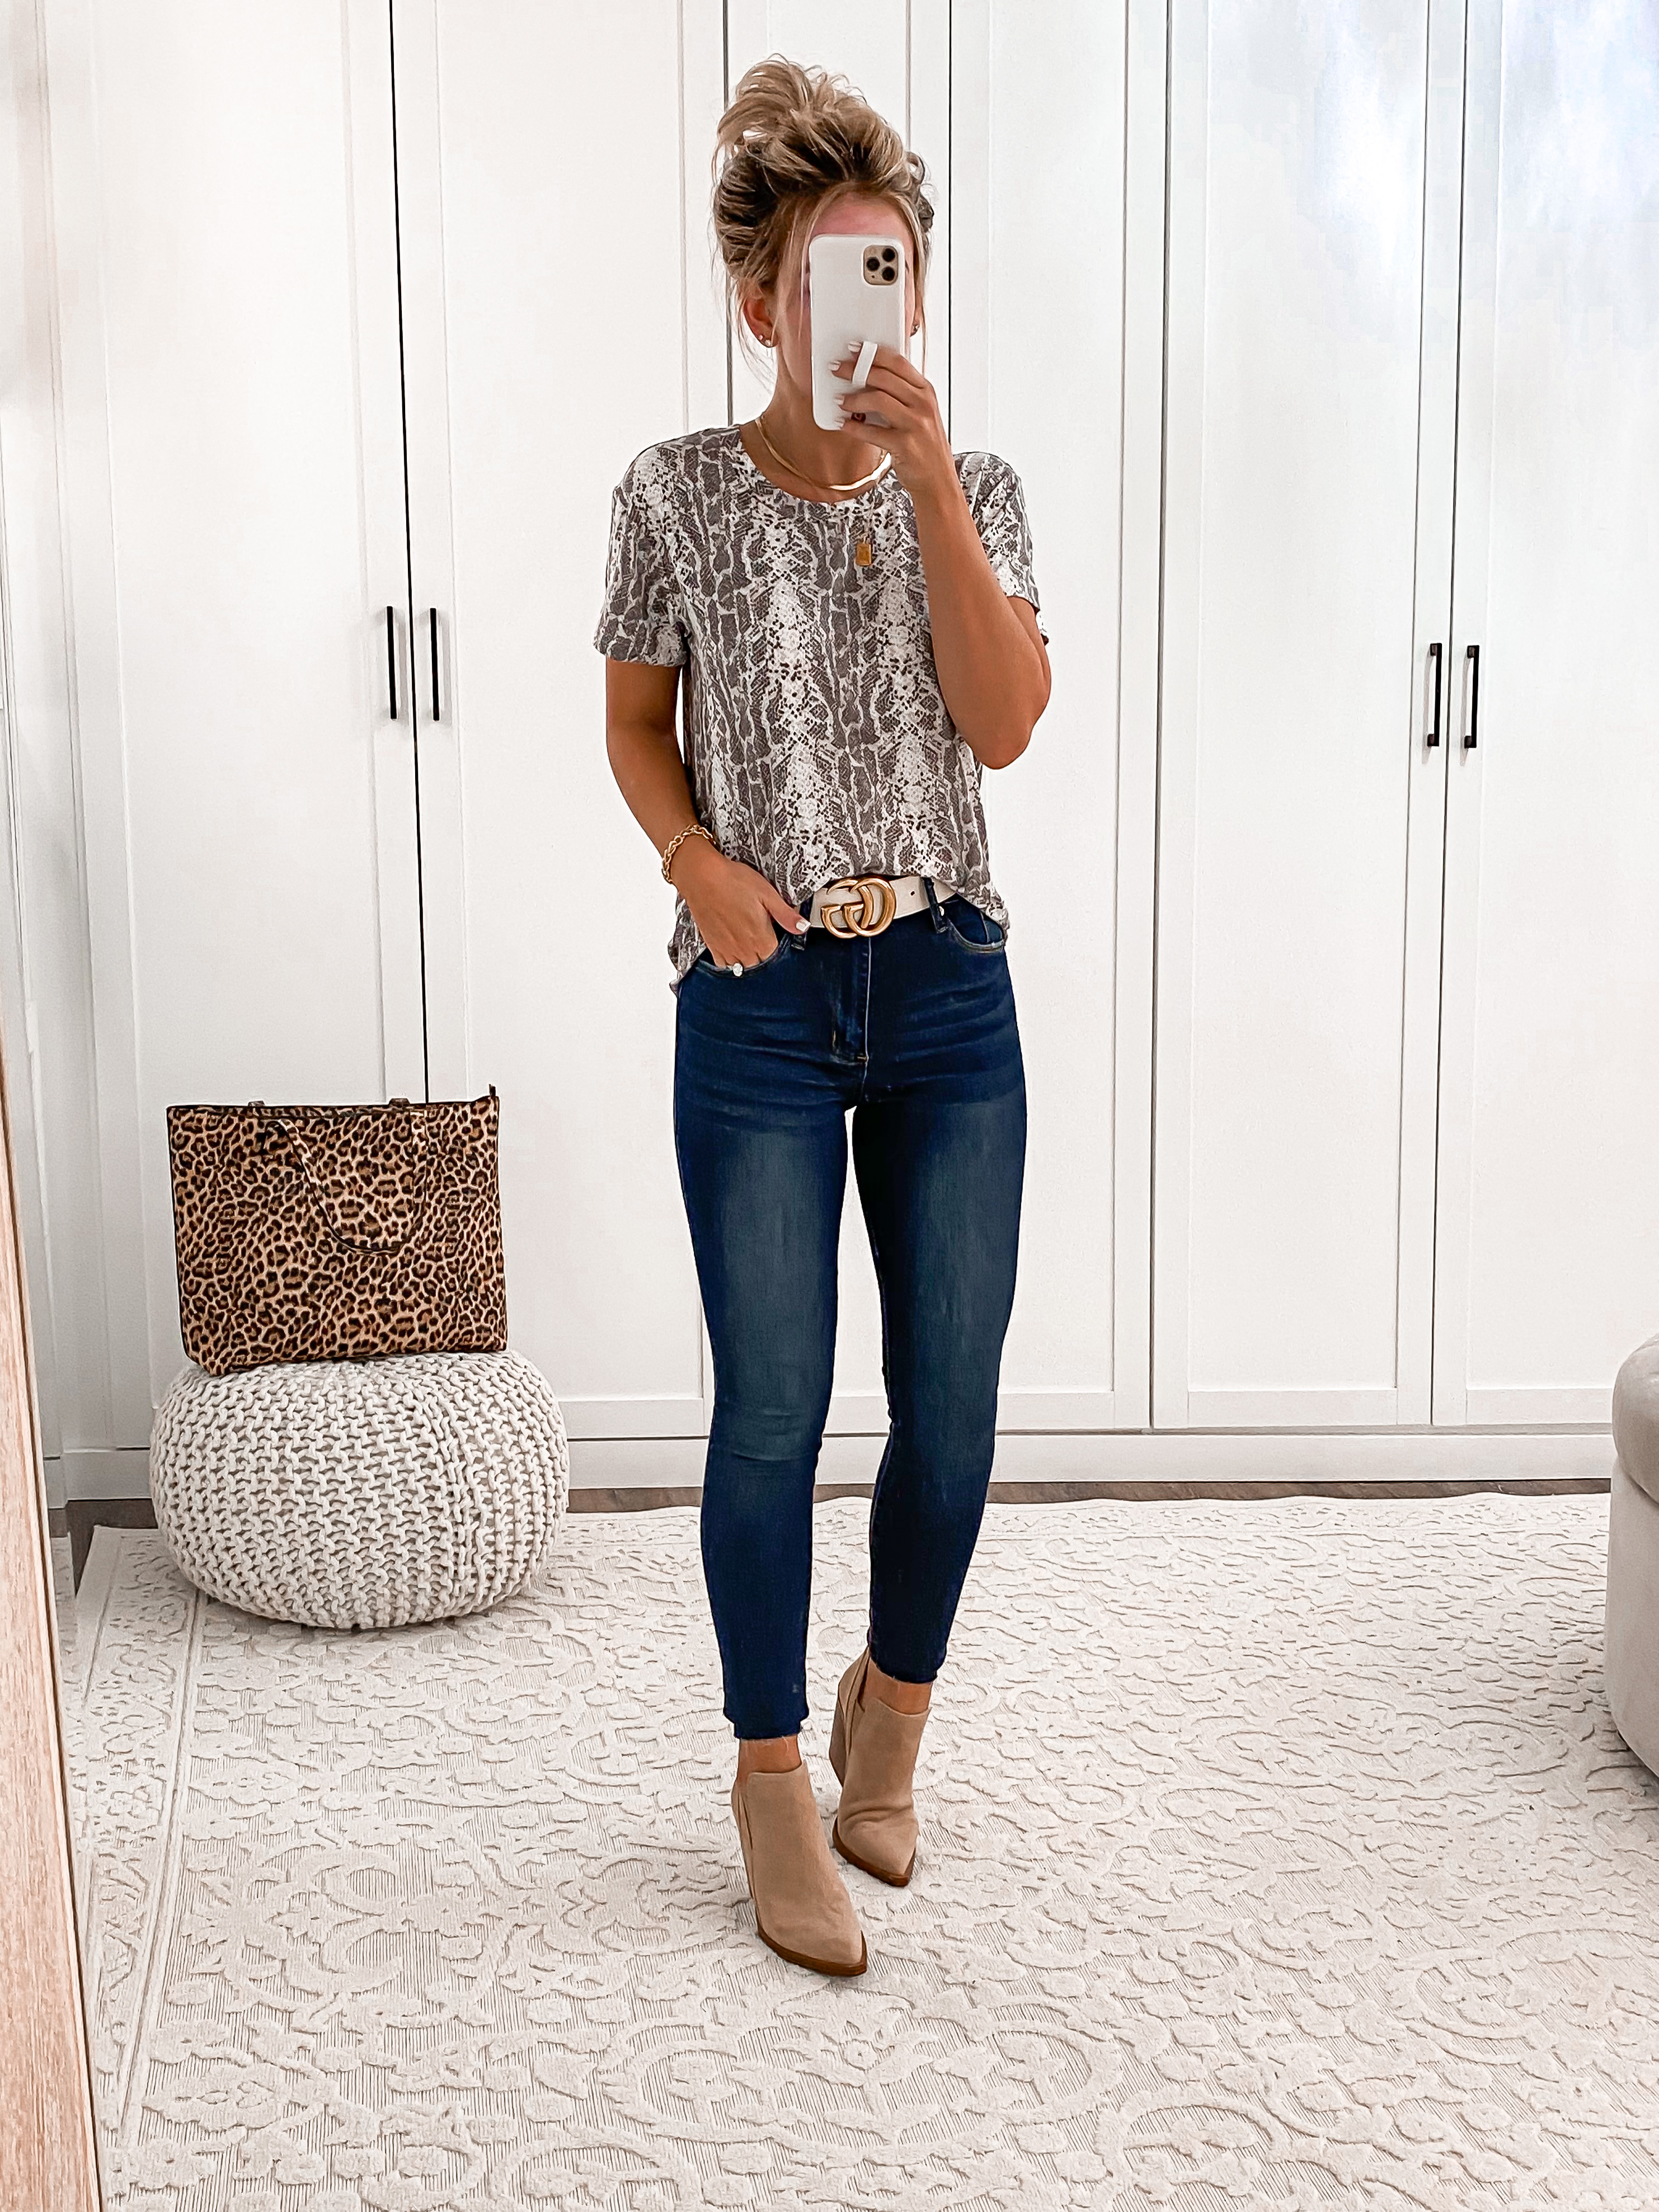 Nordstrom Anniversary Sale 2020 Nsale Laura Beverlin Fall outfit ideas7